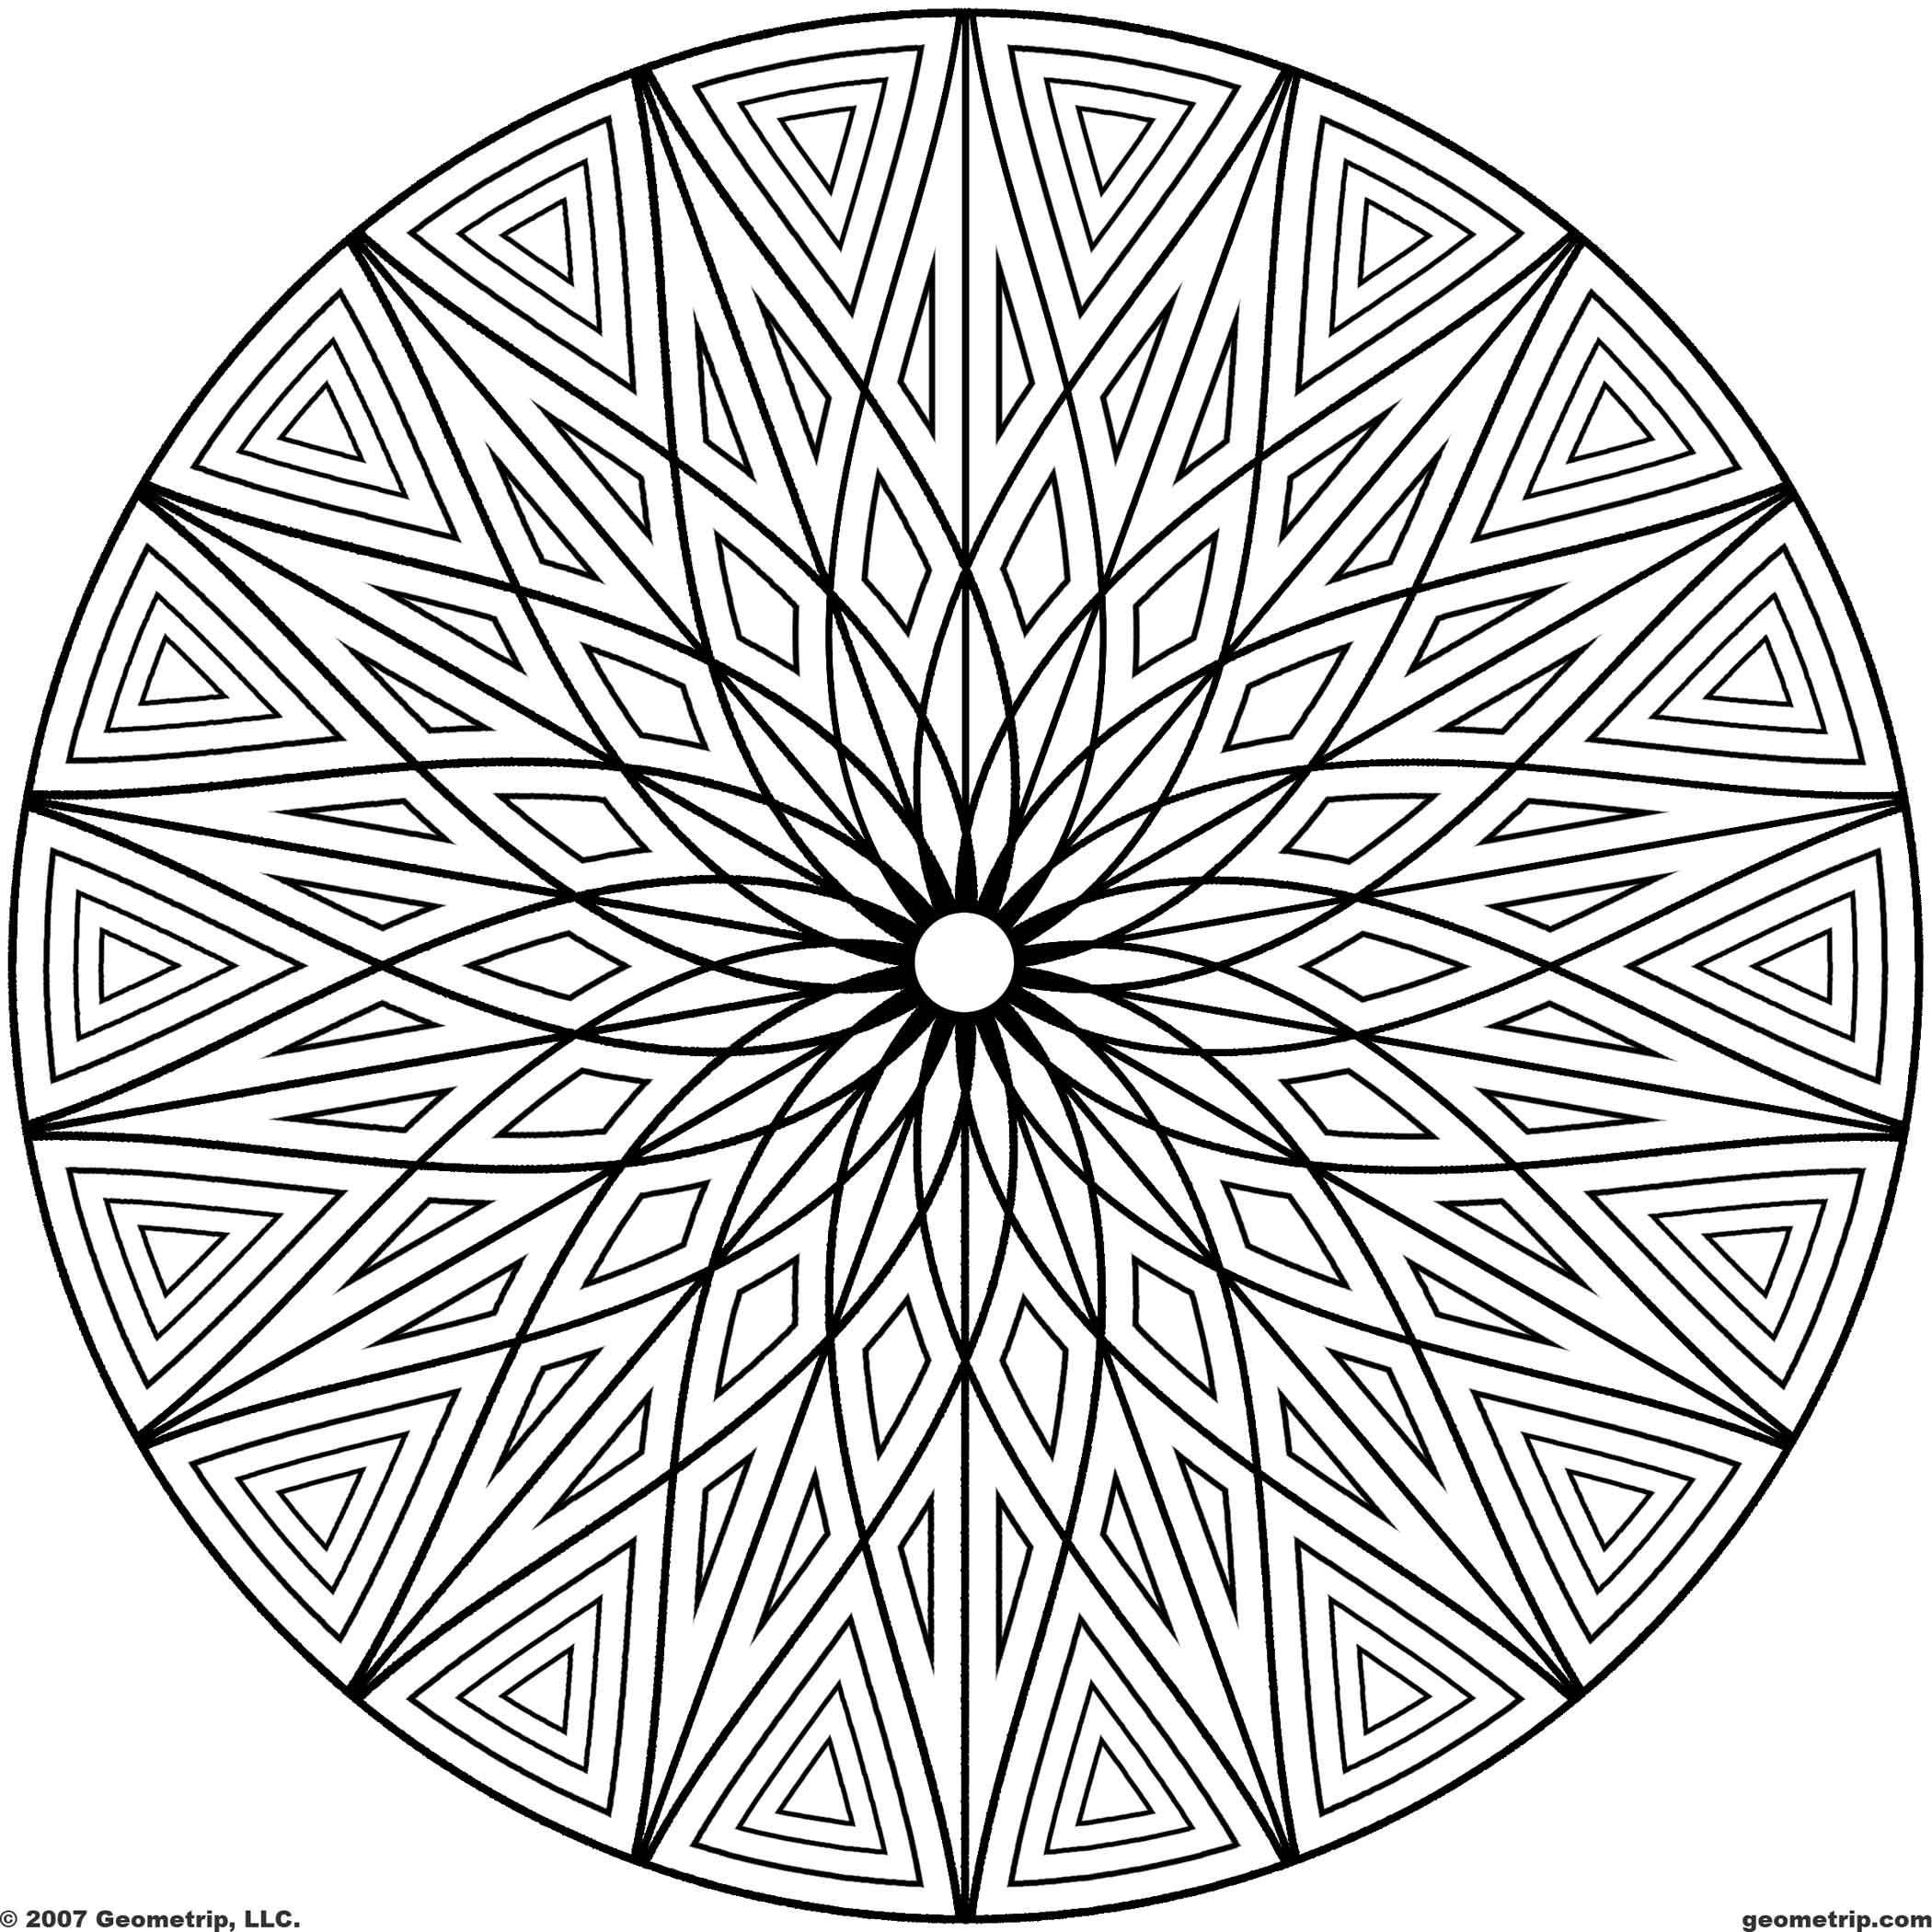 cool patterns to colour in printable geometric patterns geometripcom free to in patterns colour cool